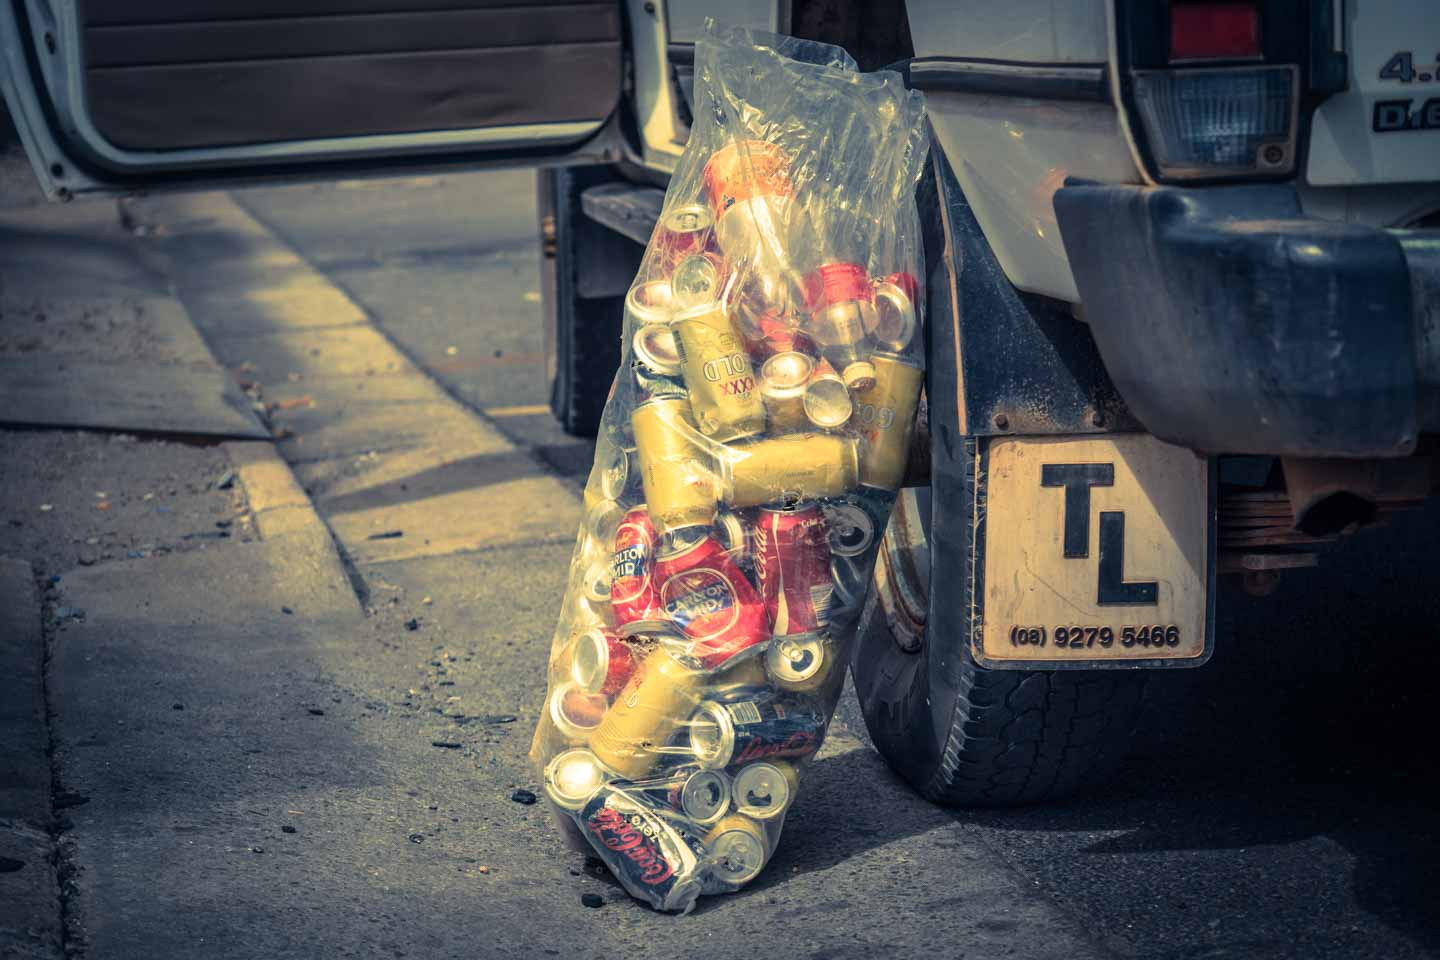 Bag of Recycling cans in South Australia collected by YouKeepUsTraveling